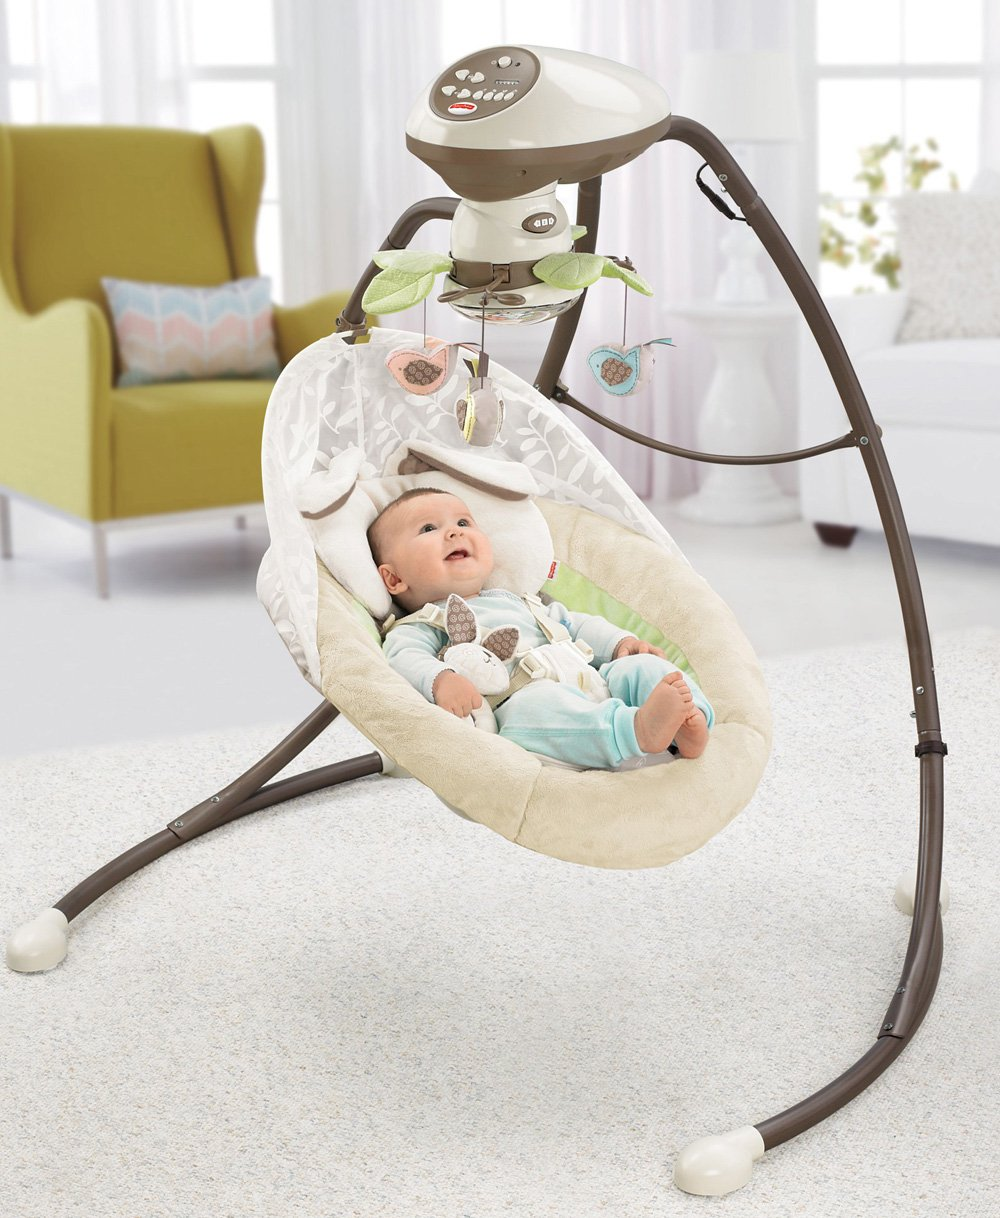 Baby bed that connects to parents bed - Amazon Com Fisher Price Snugabunny Cradle N Swing With Smart Swing Technology Baby